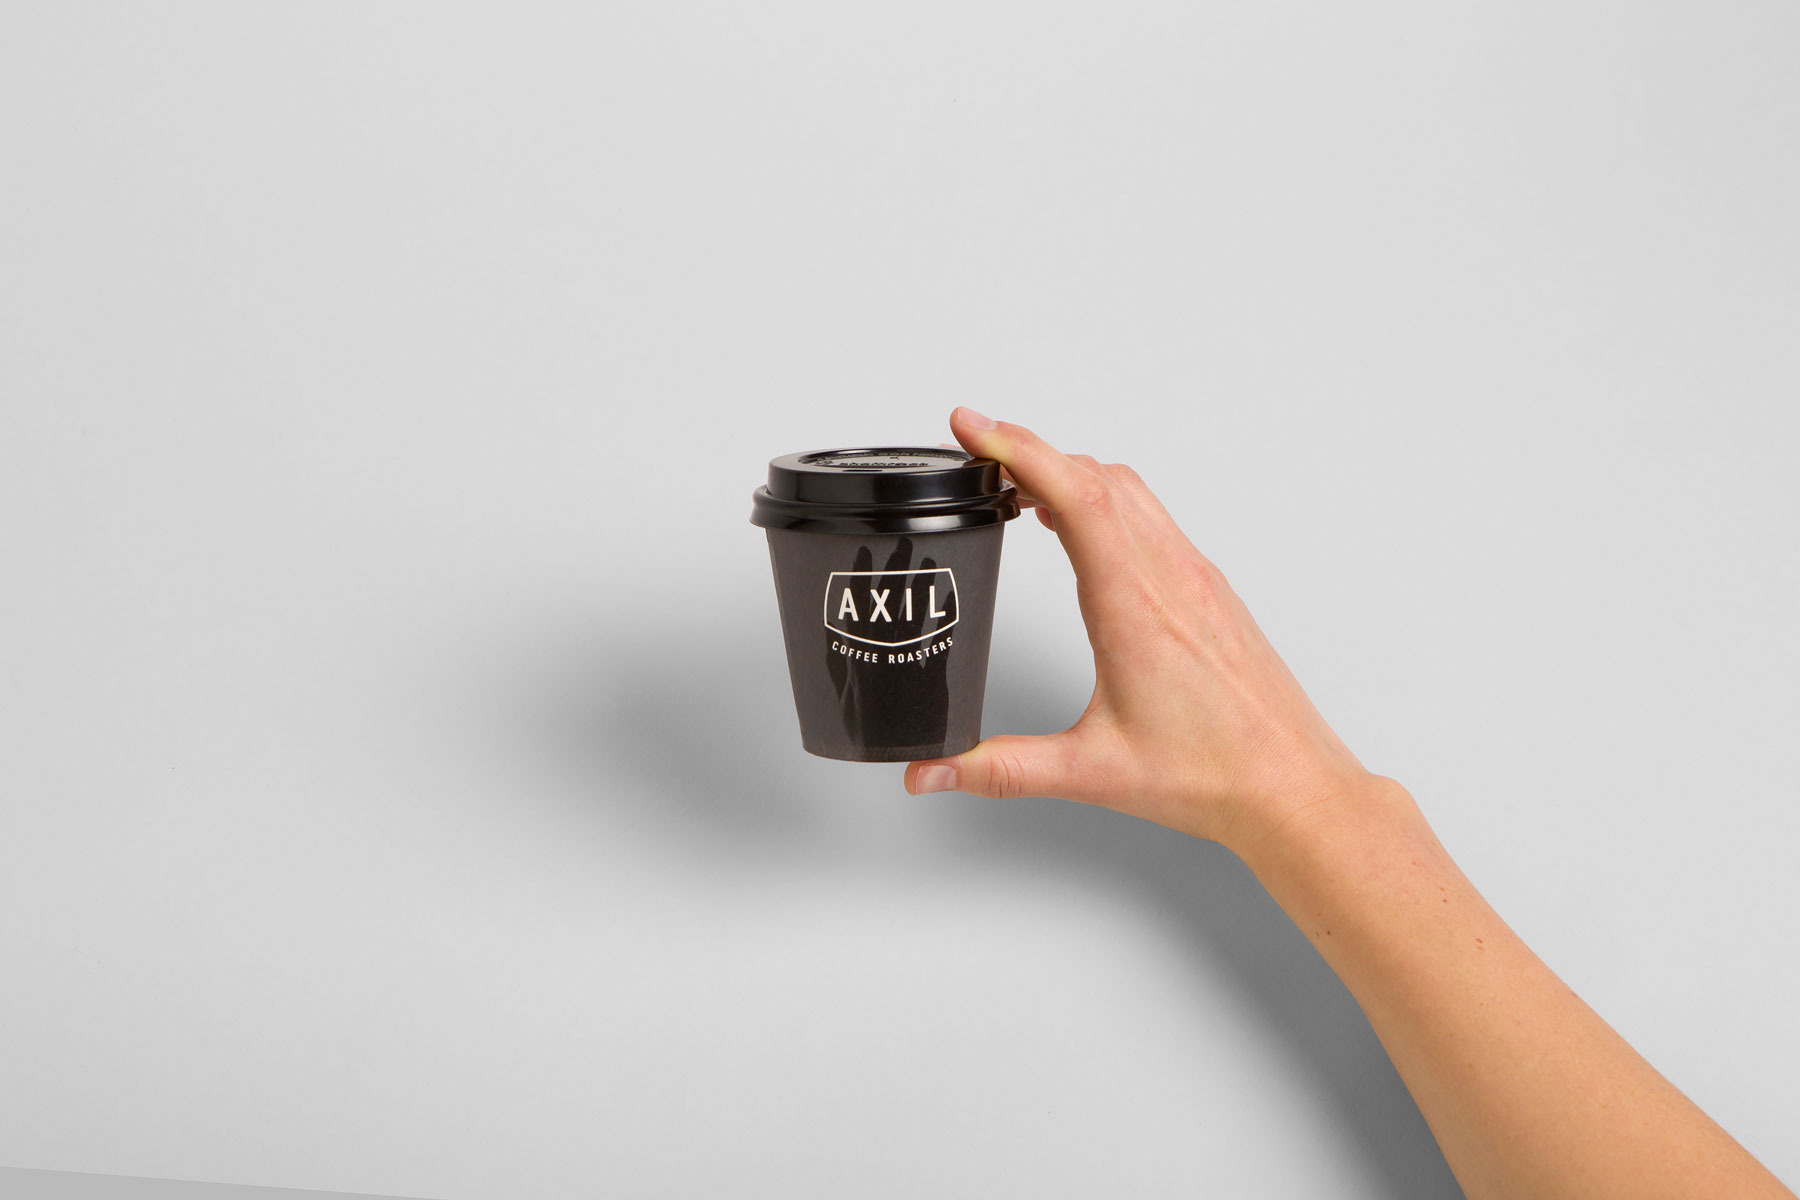 Axil_Coffee_Roasters_Brand_Packaging3